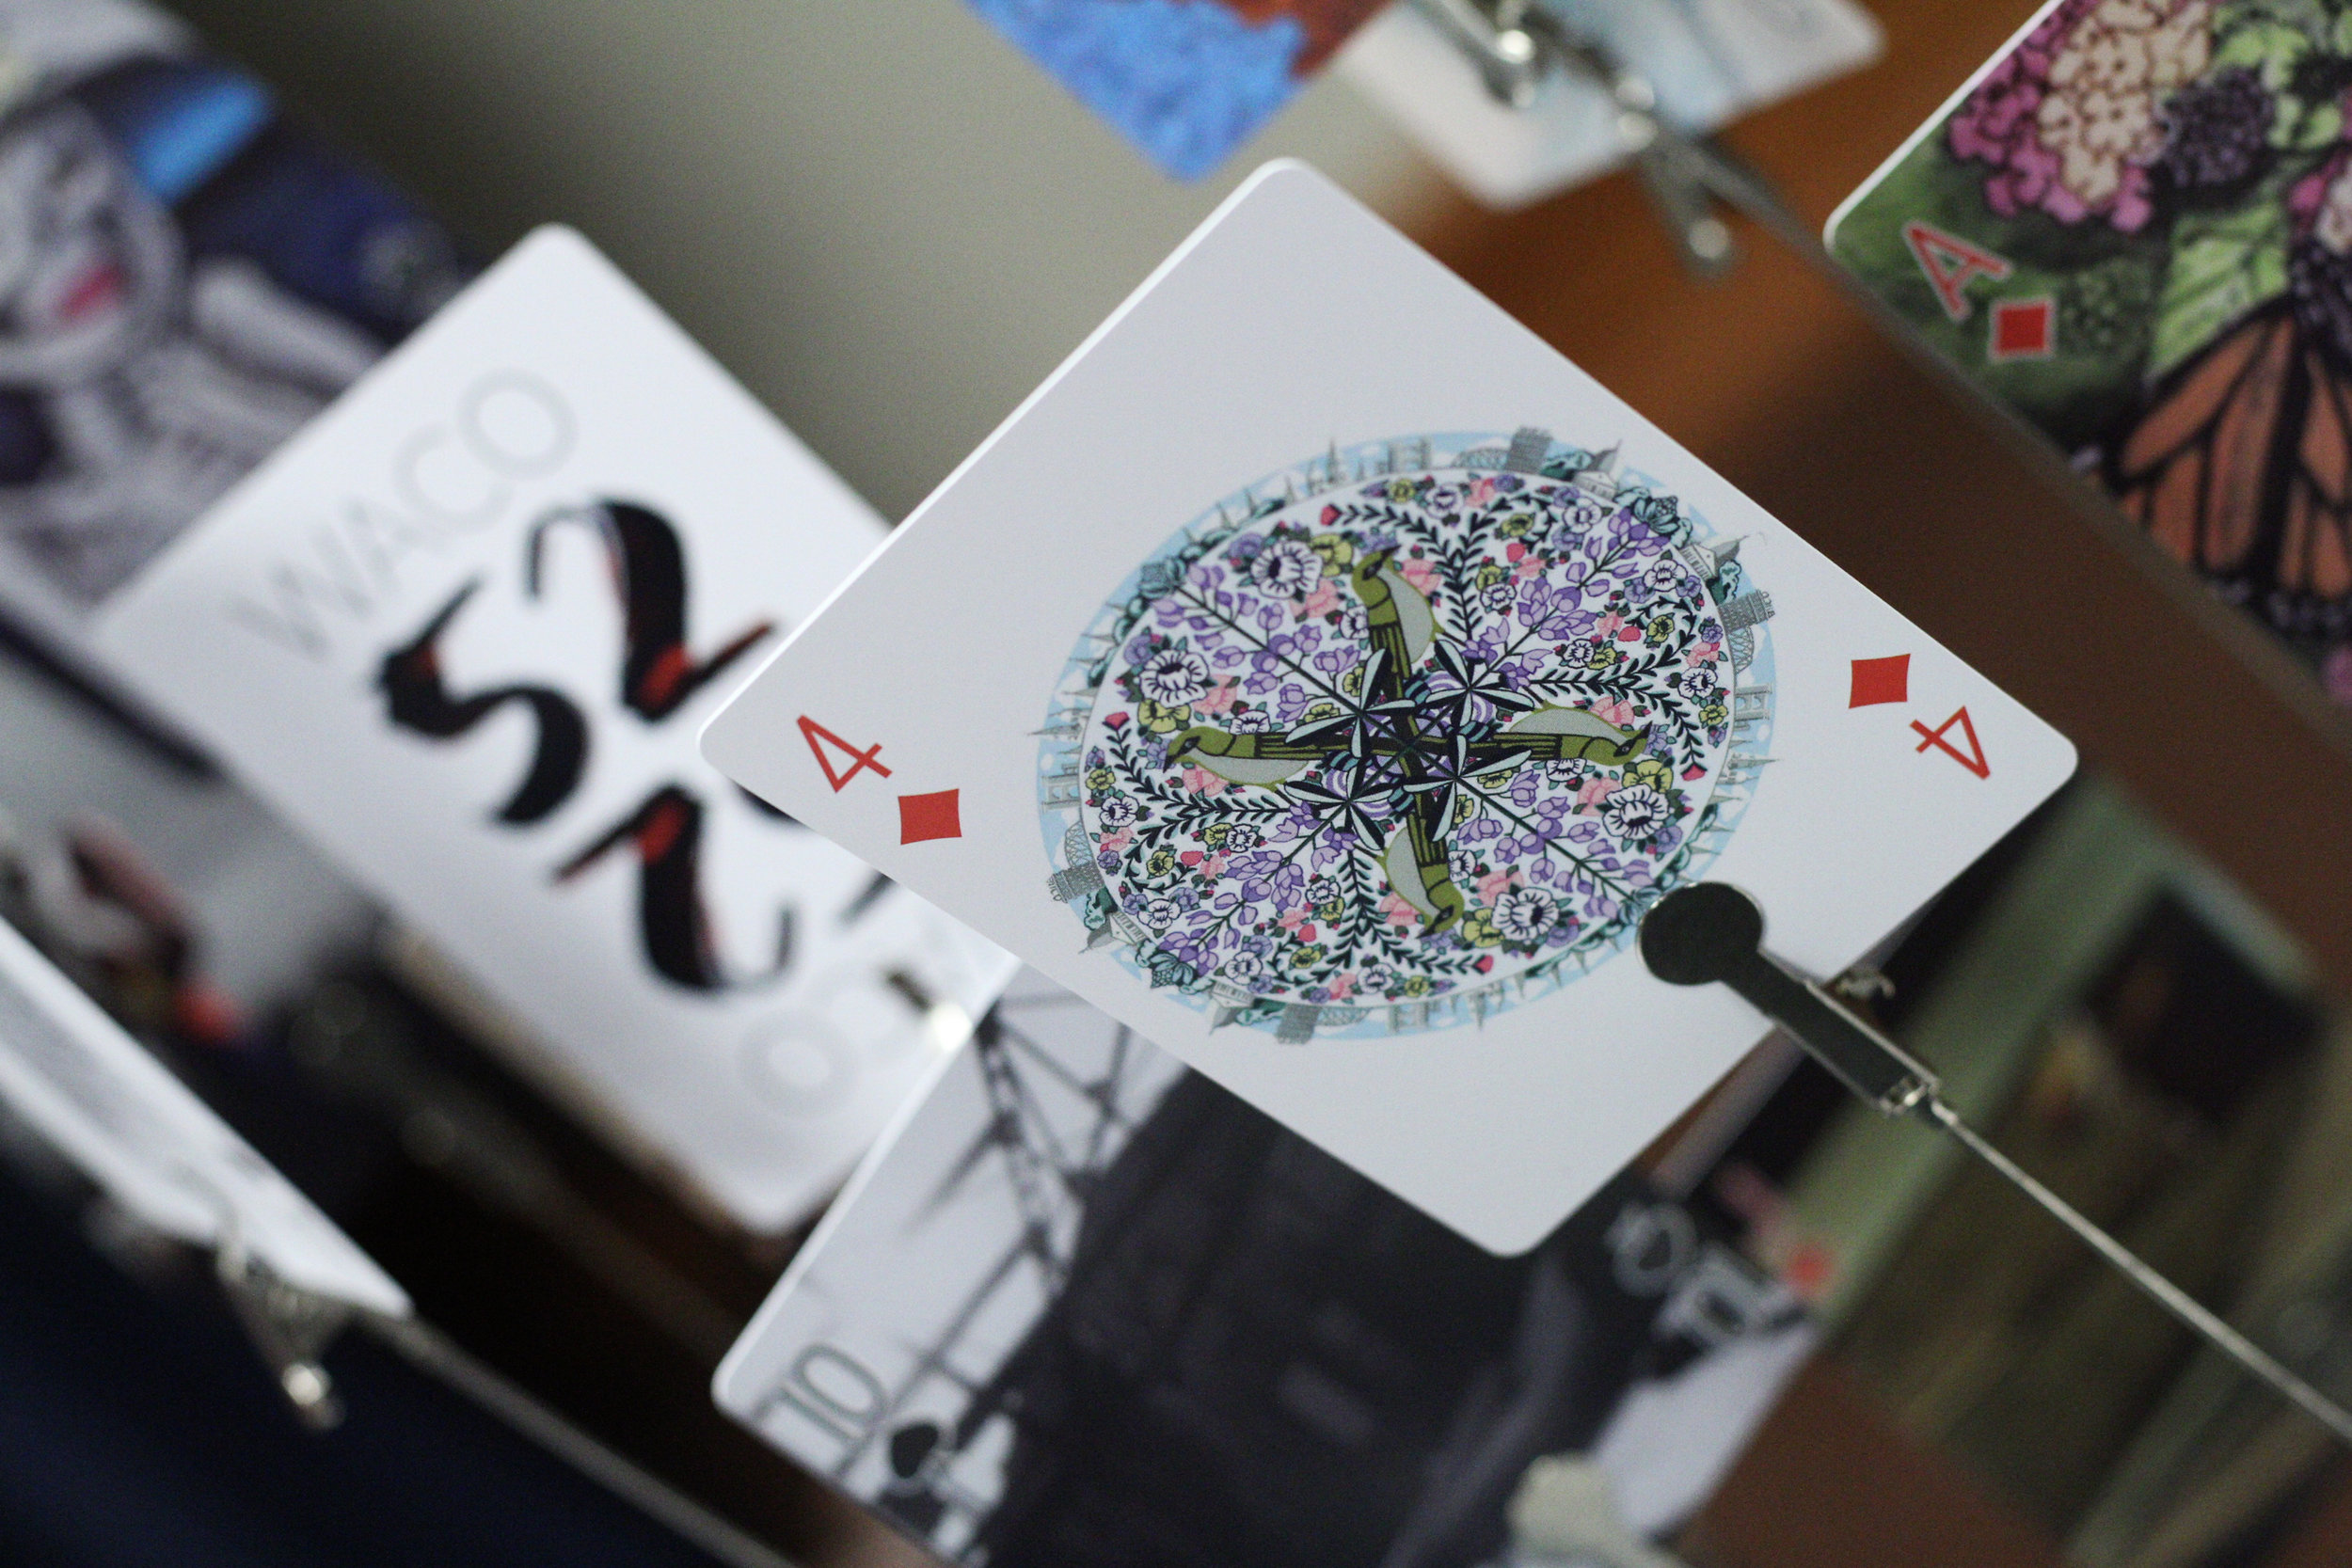 Waco Mandala  by Rhiannon Rosenbaum as a Waco 52 playing card.